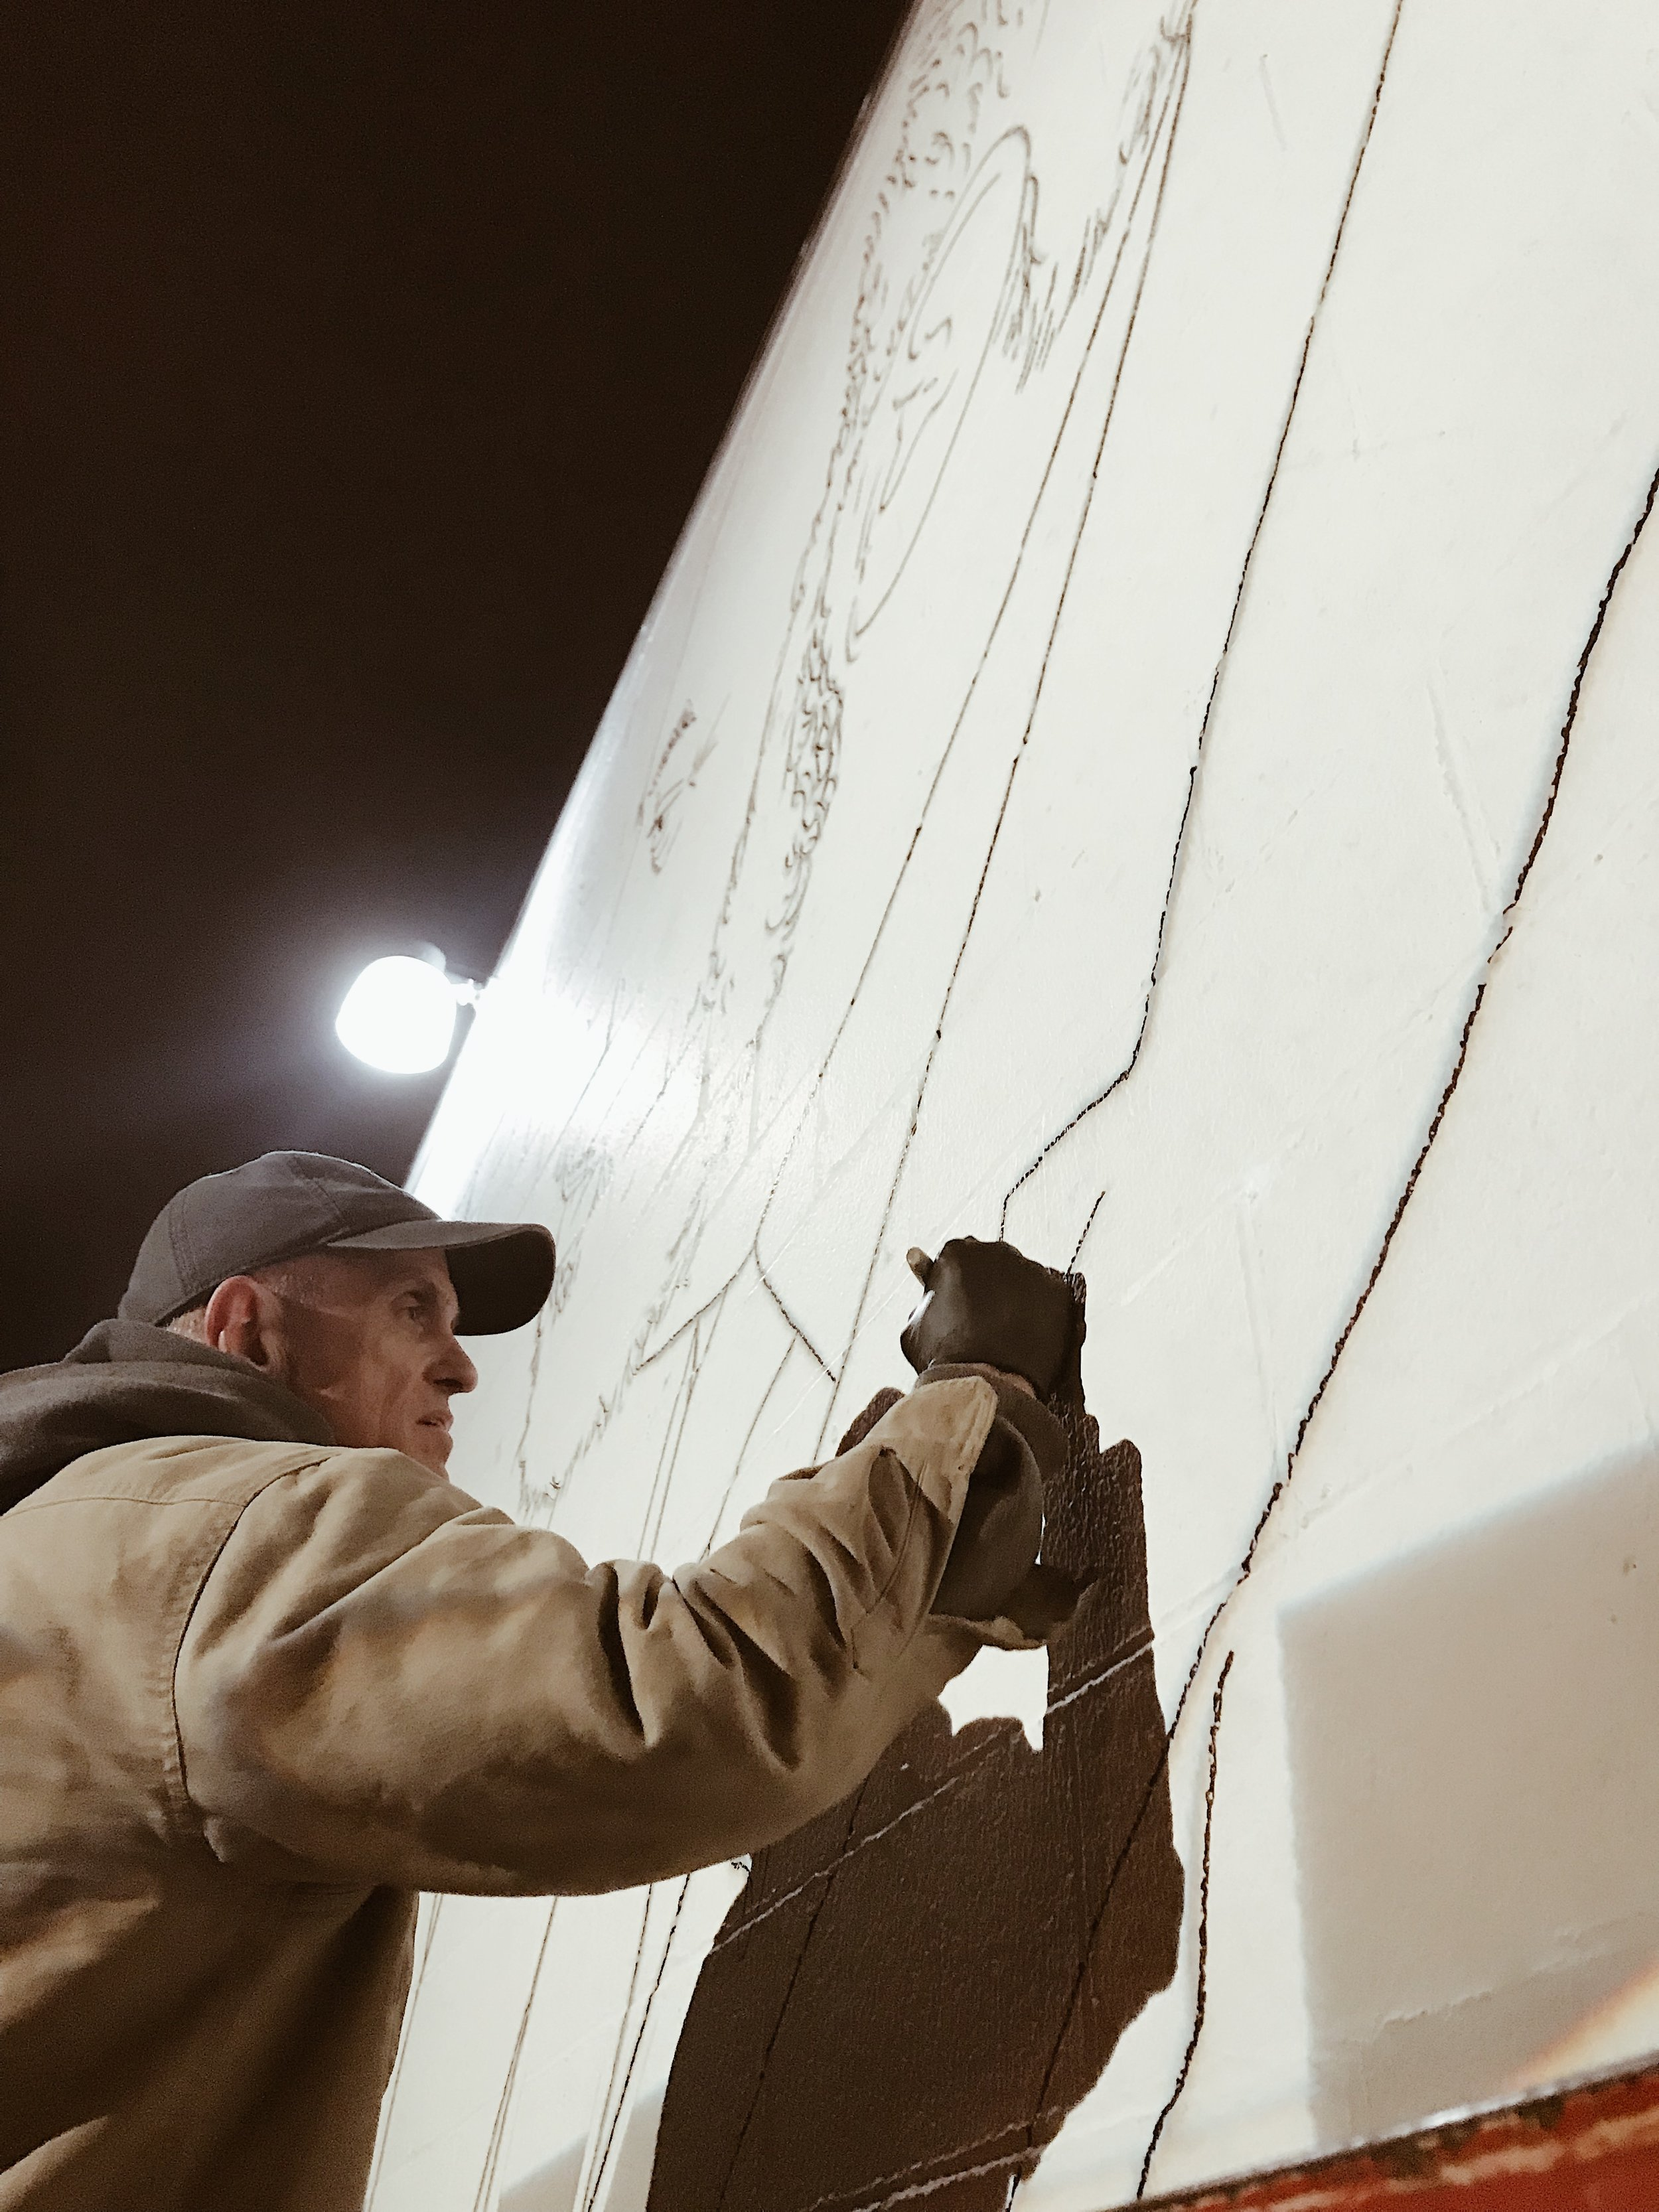 Sketching it out. - Burrrr!!! Working at night in freezing rain, we blew up the art directly on the wall.